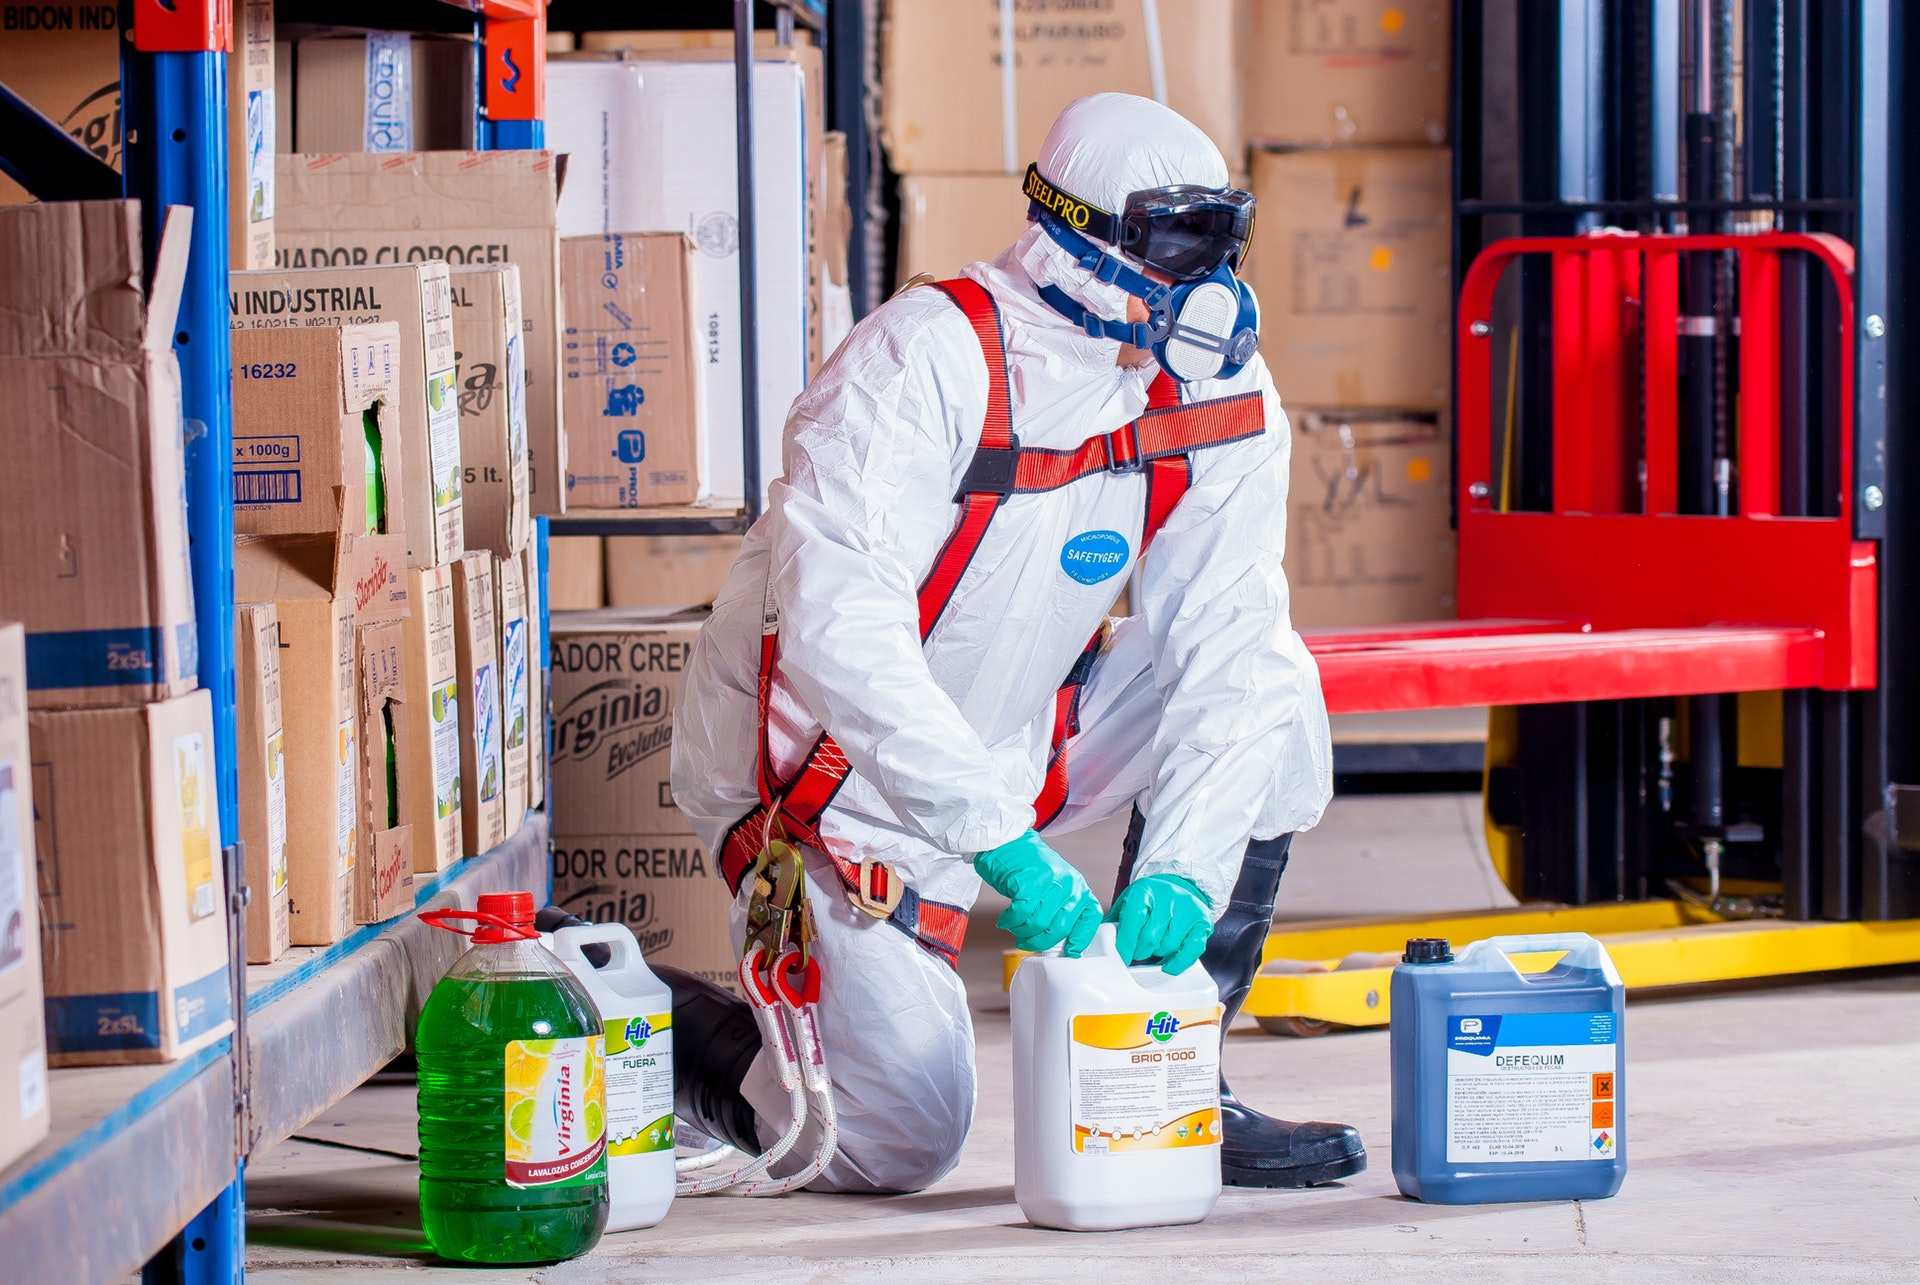 Hazardous chemical handling